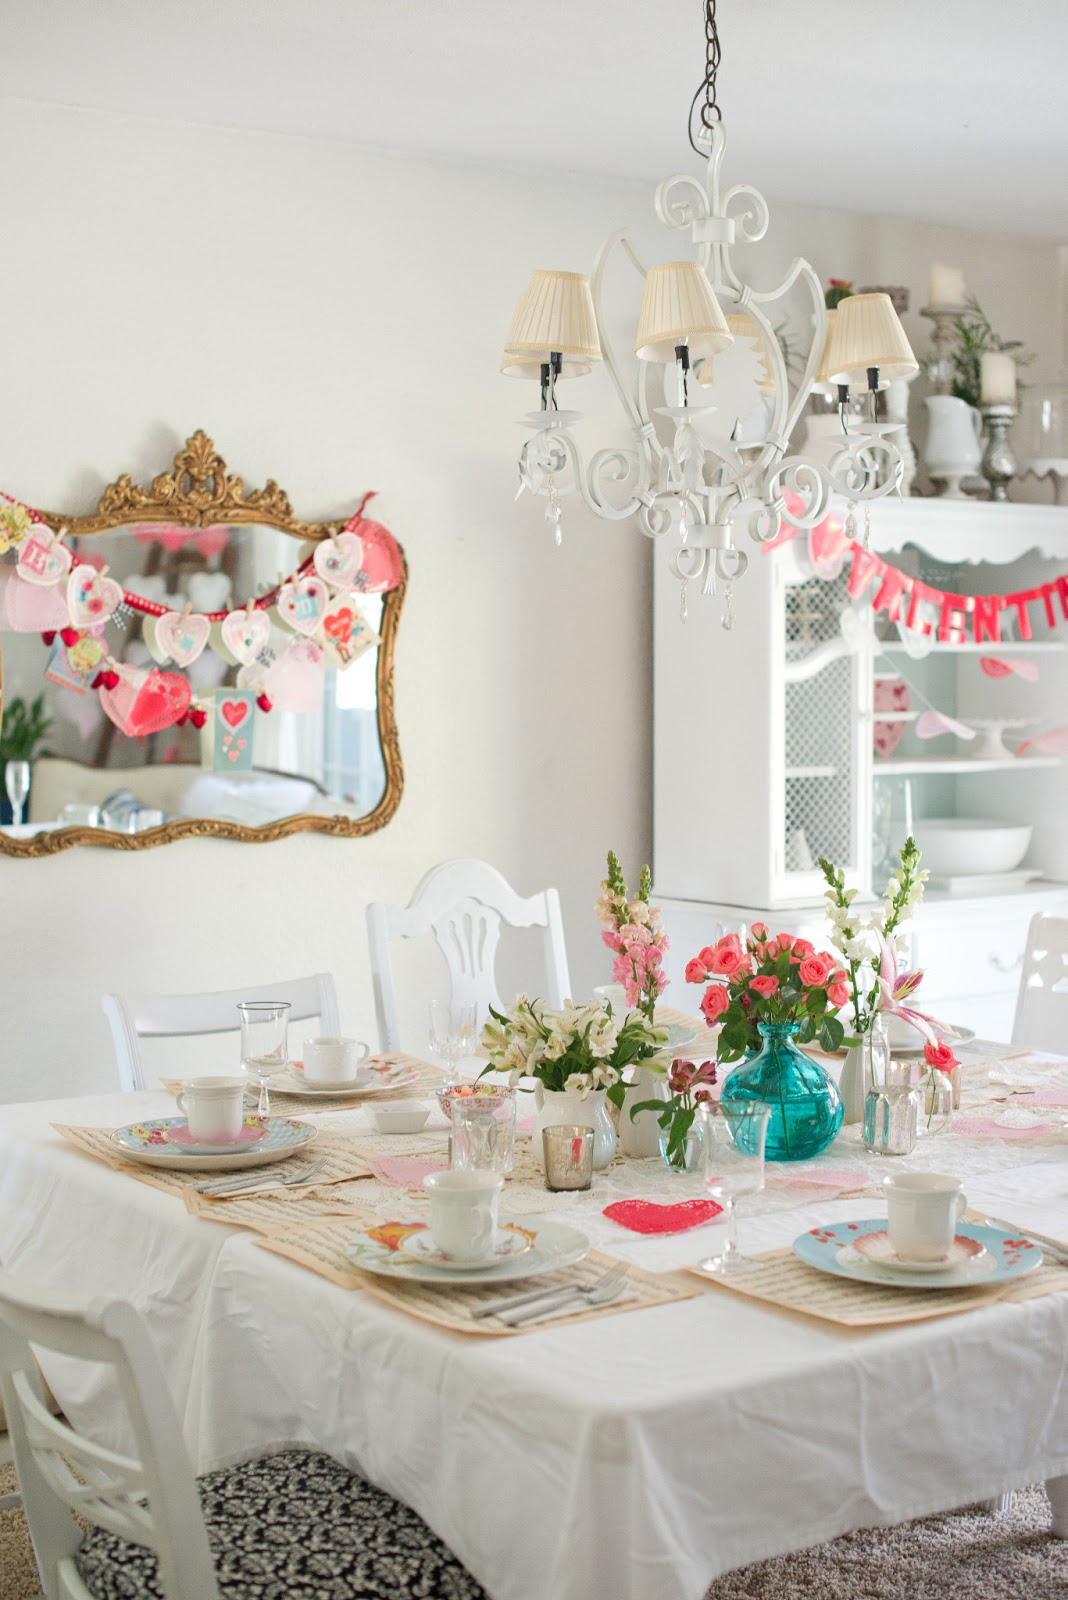 ... While Still Having A Centerpiece, I Brought In A Folding Table And Put  It Up Against Our Dining Table And Then Covered Them With White Tablecloths.